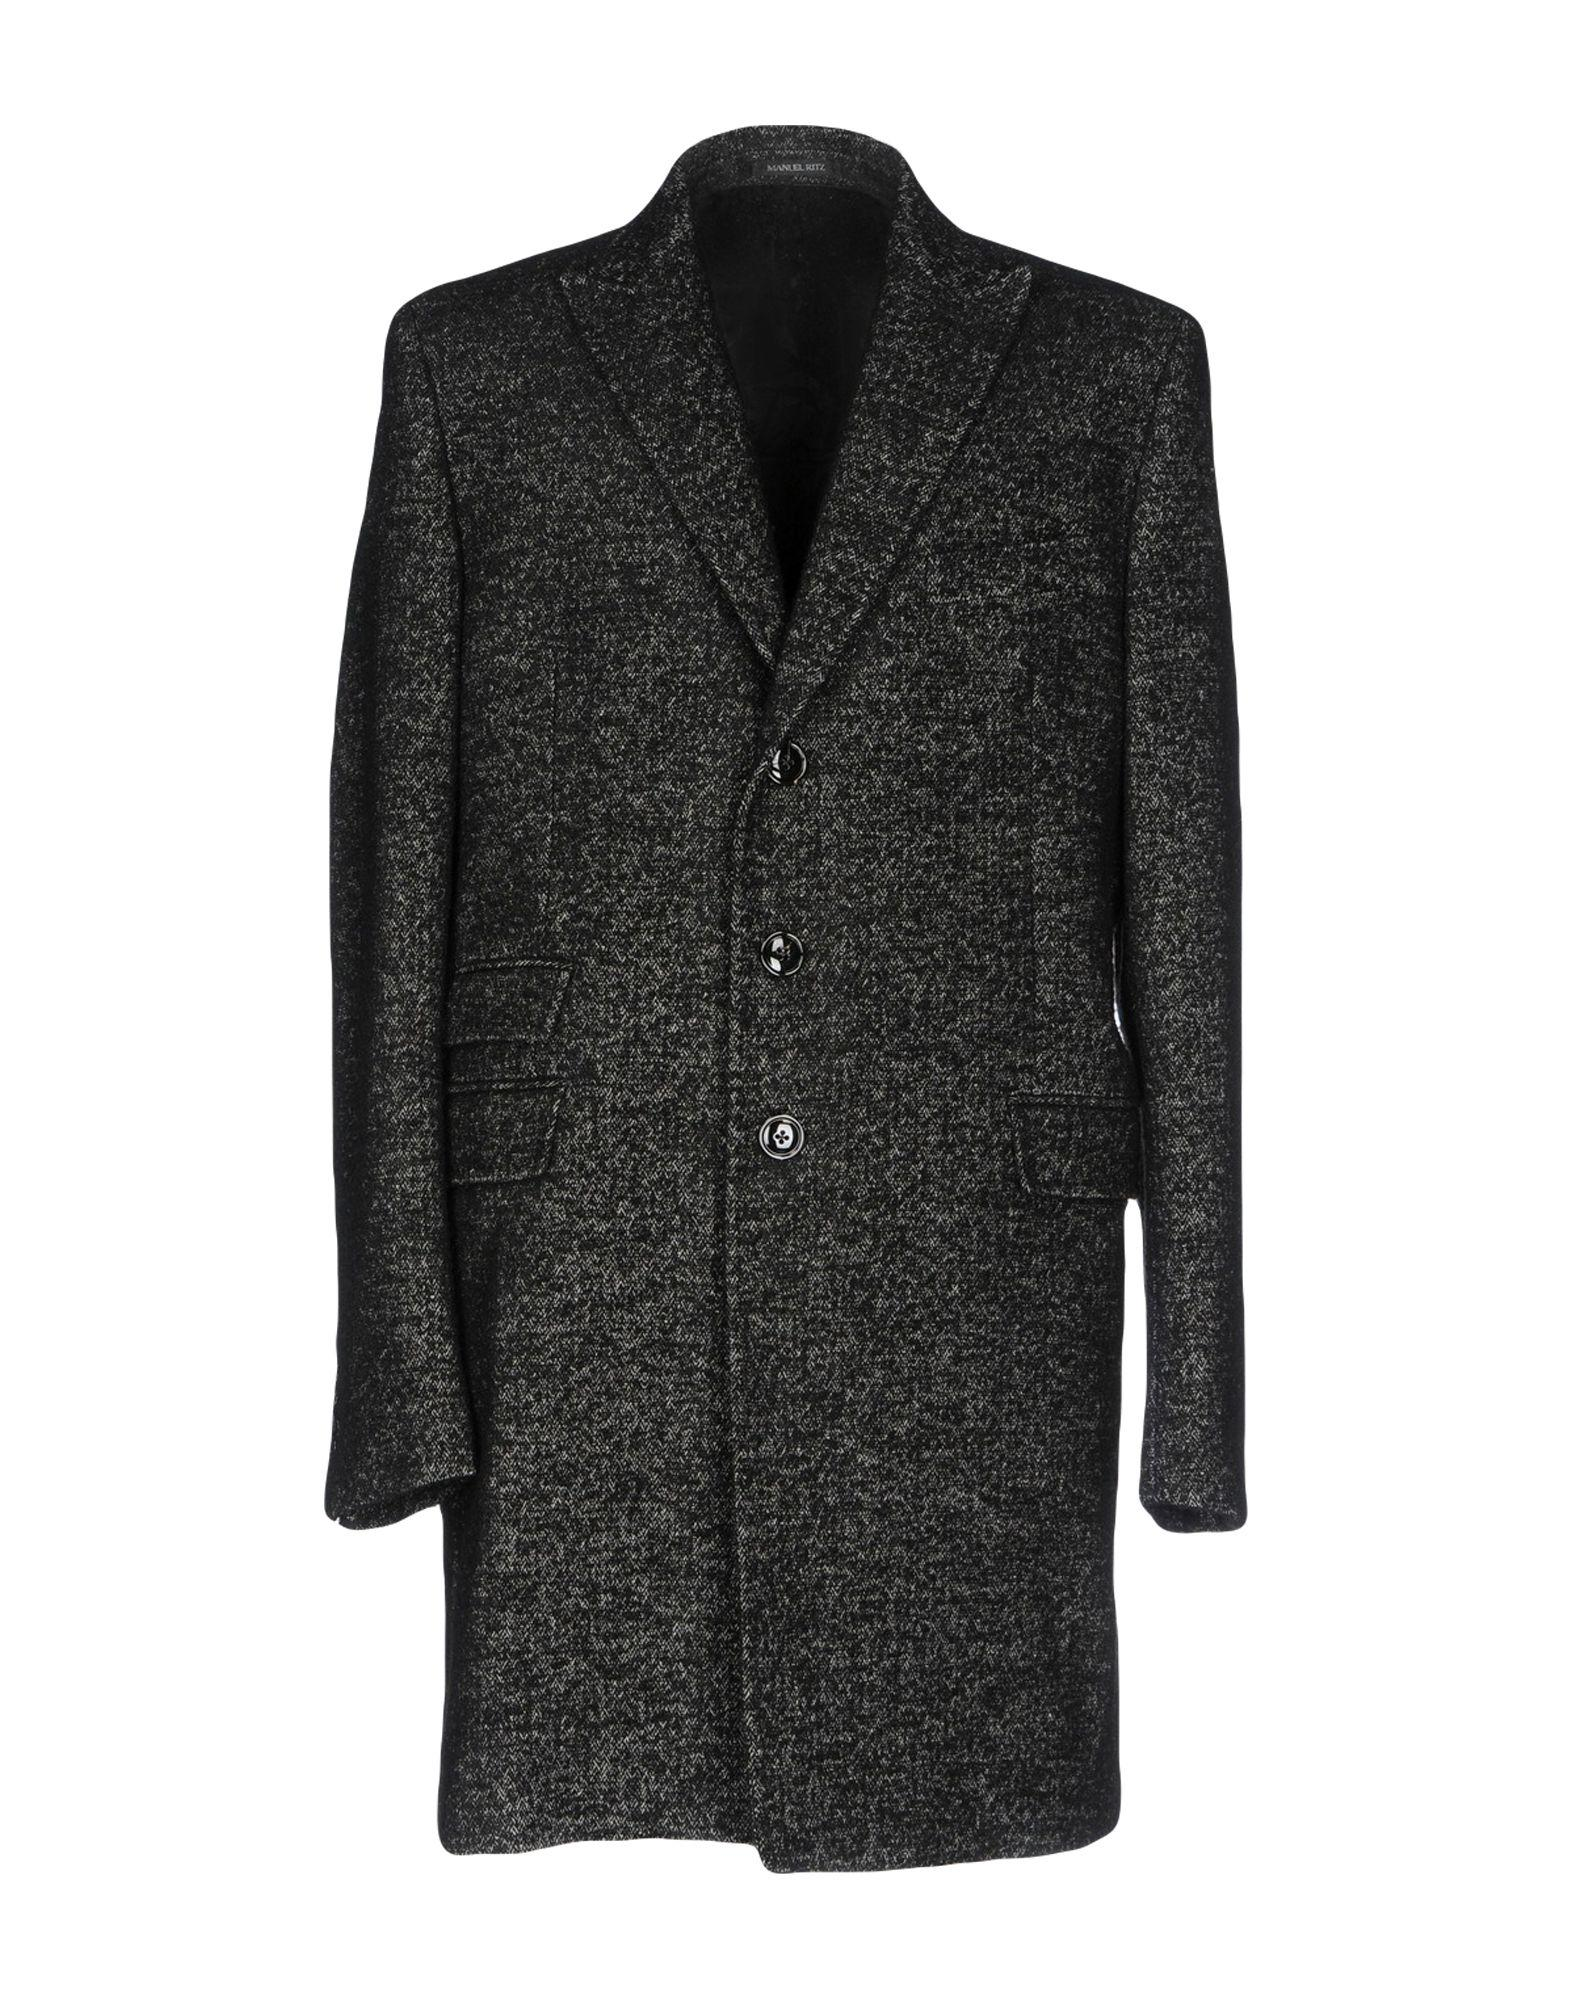 Manuel Ritz Coat In Black